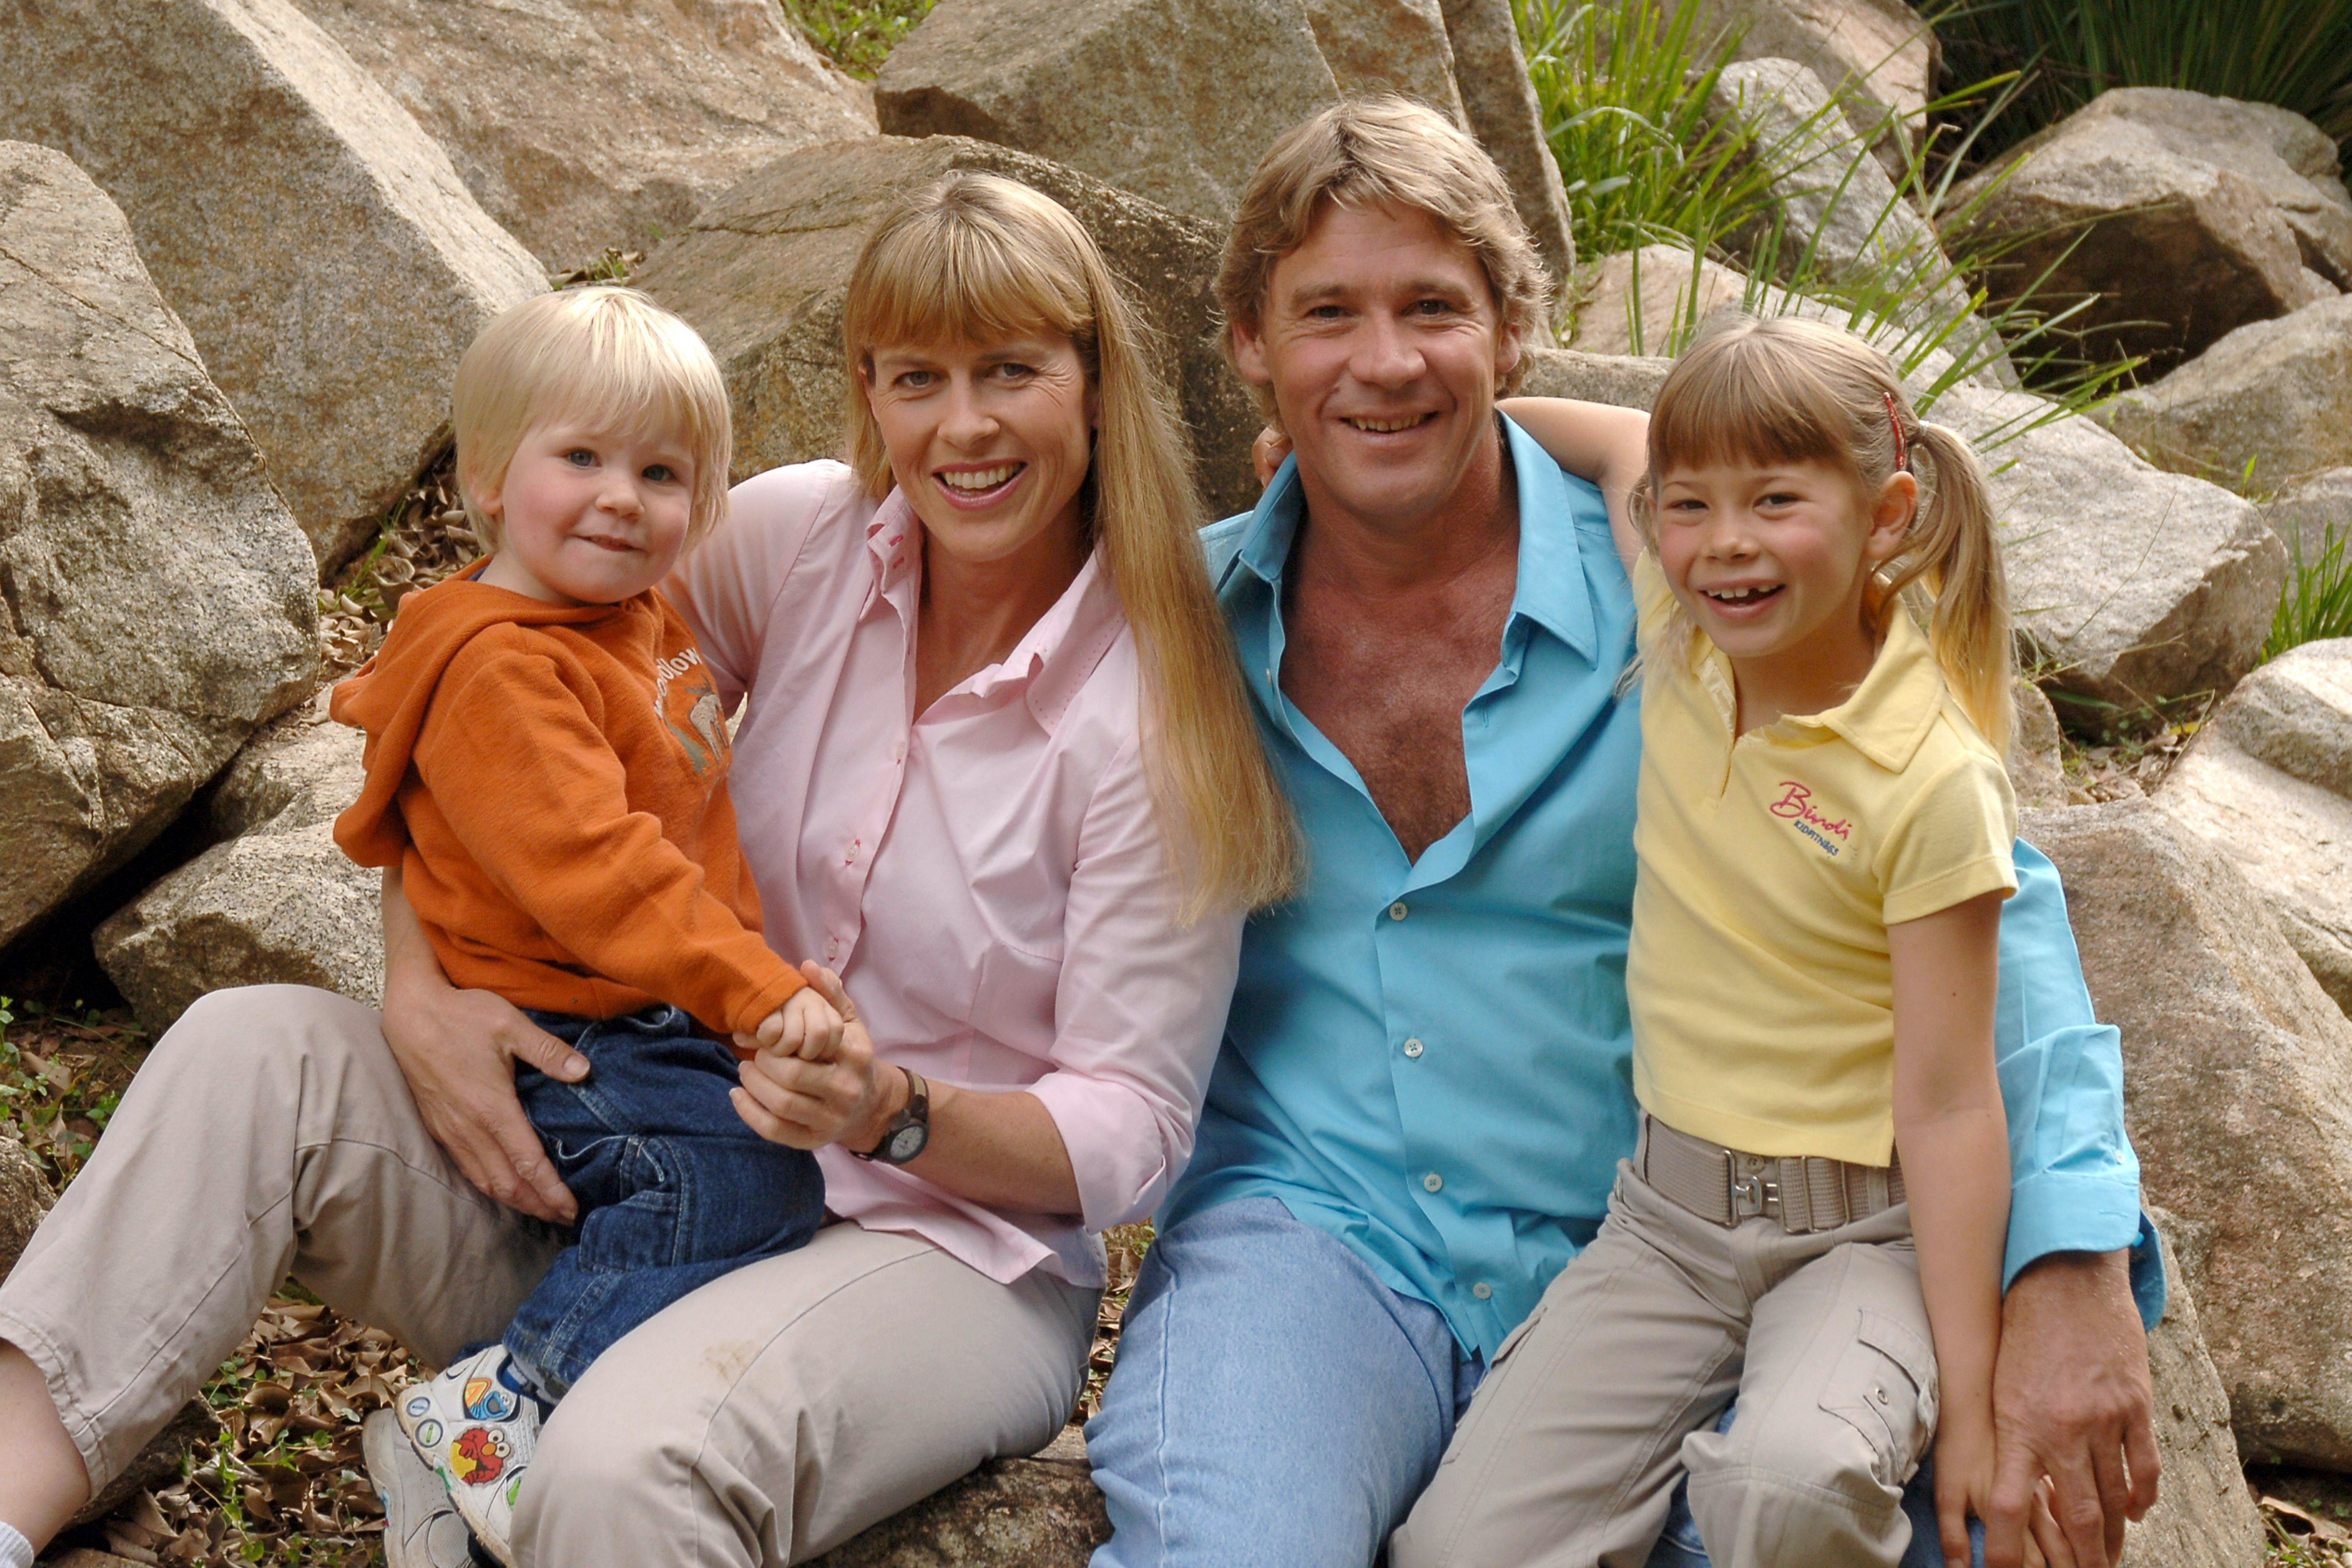 Steve Irwin poses with his family at Australia Zoo June 19, 2006 in Beerwah, Australia | Photo: Getty Images